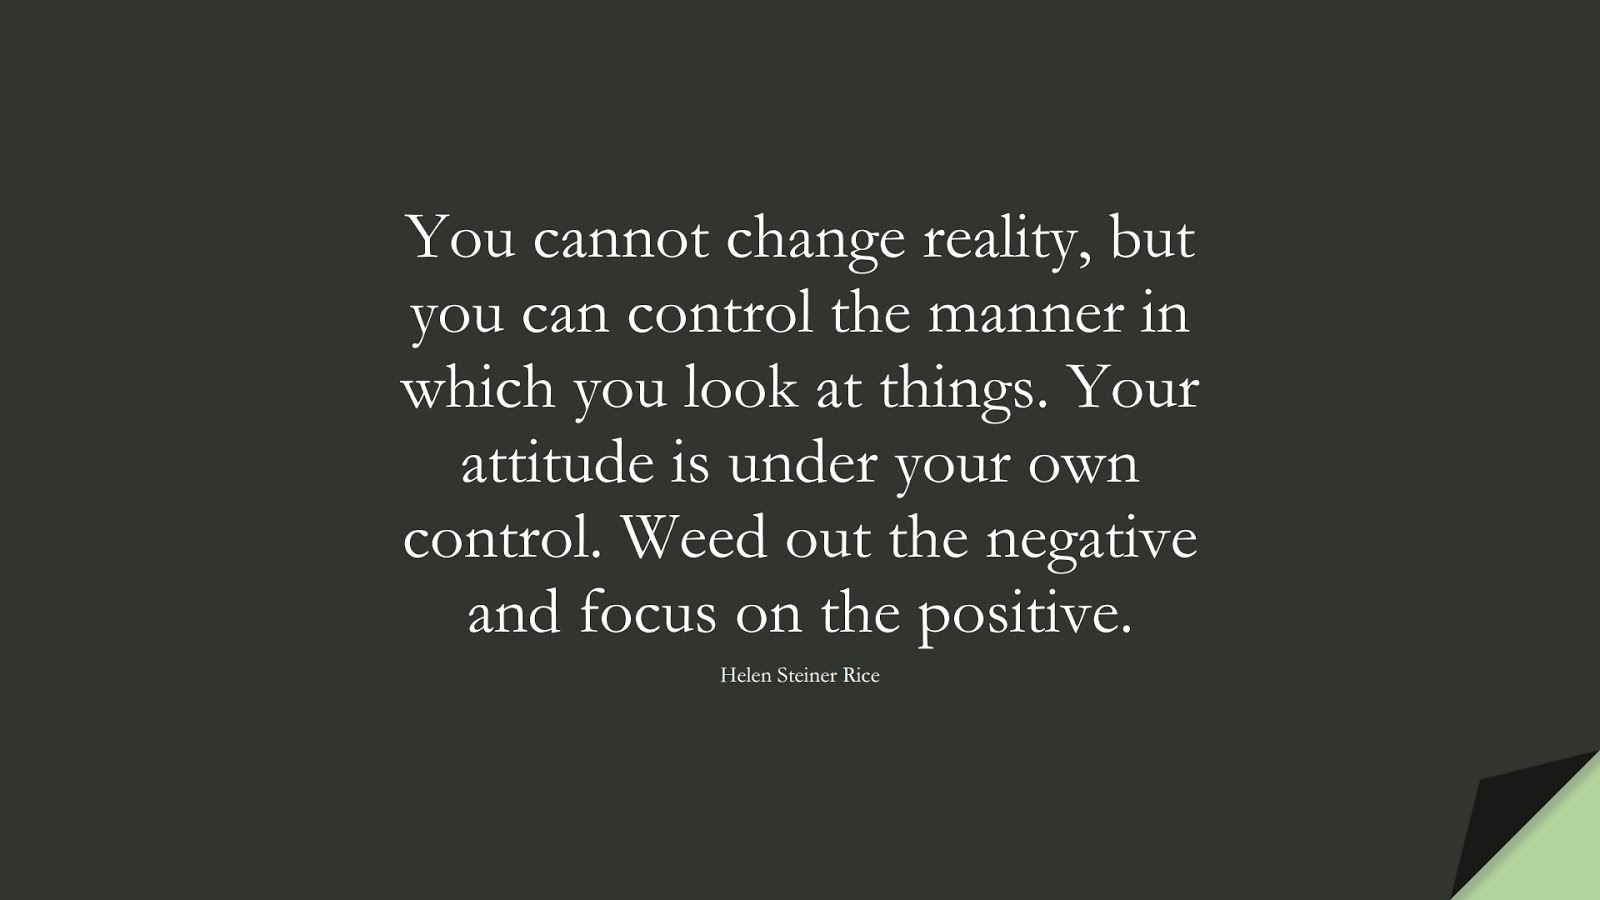 You cannot change reality, but you can control the manner in which you look at things. Your attitude is under your own control. Weed out the negative and focus on the positive. (Helen Steiner Rice);  #PositiveQuotes